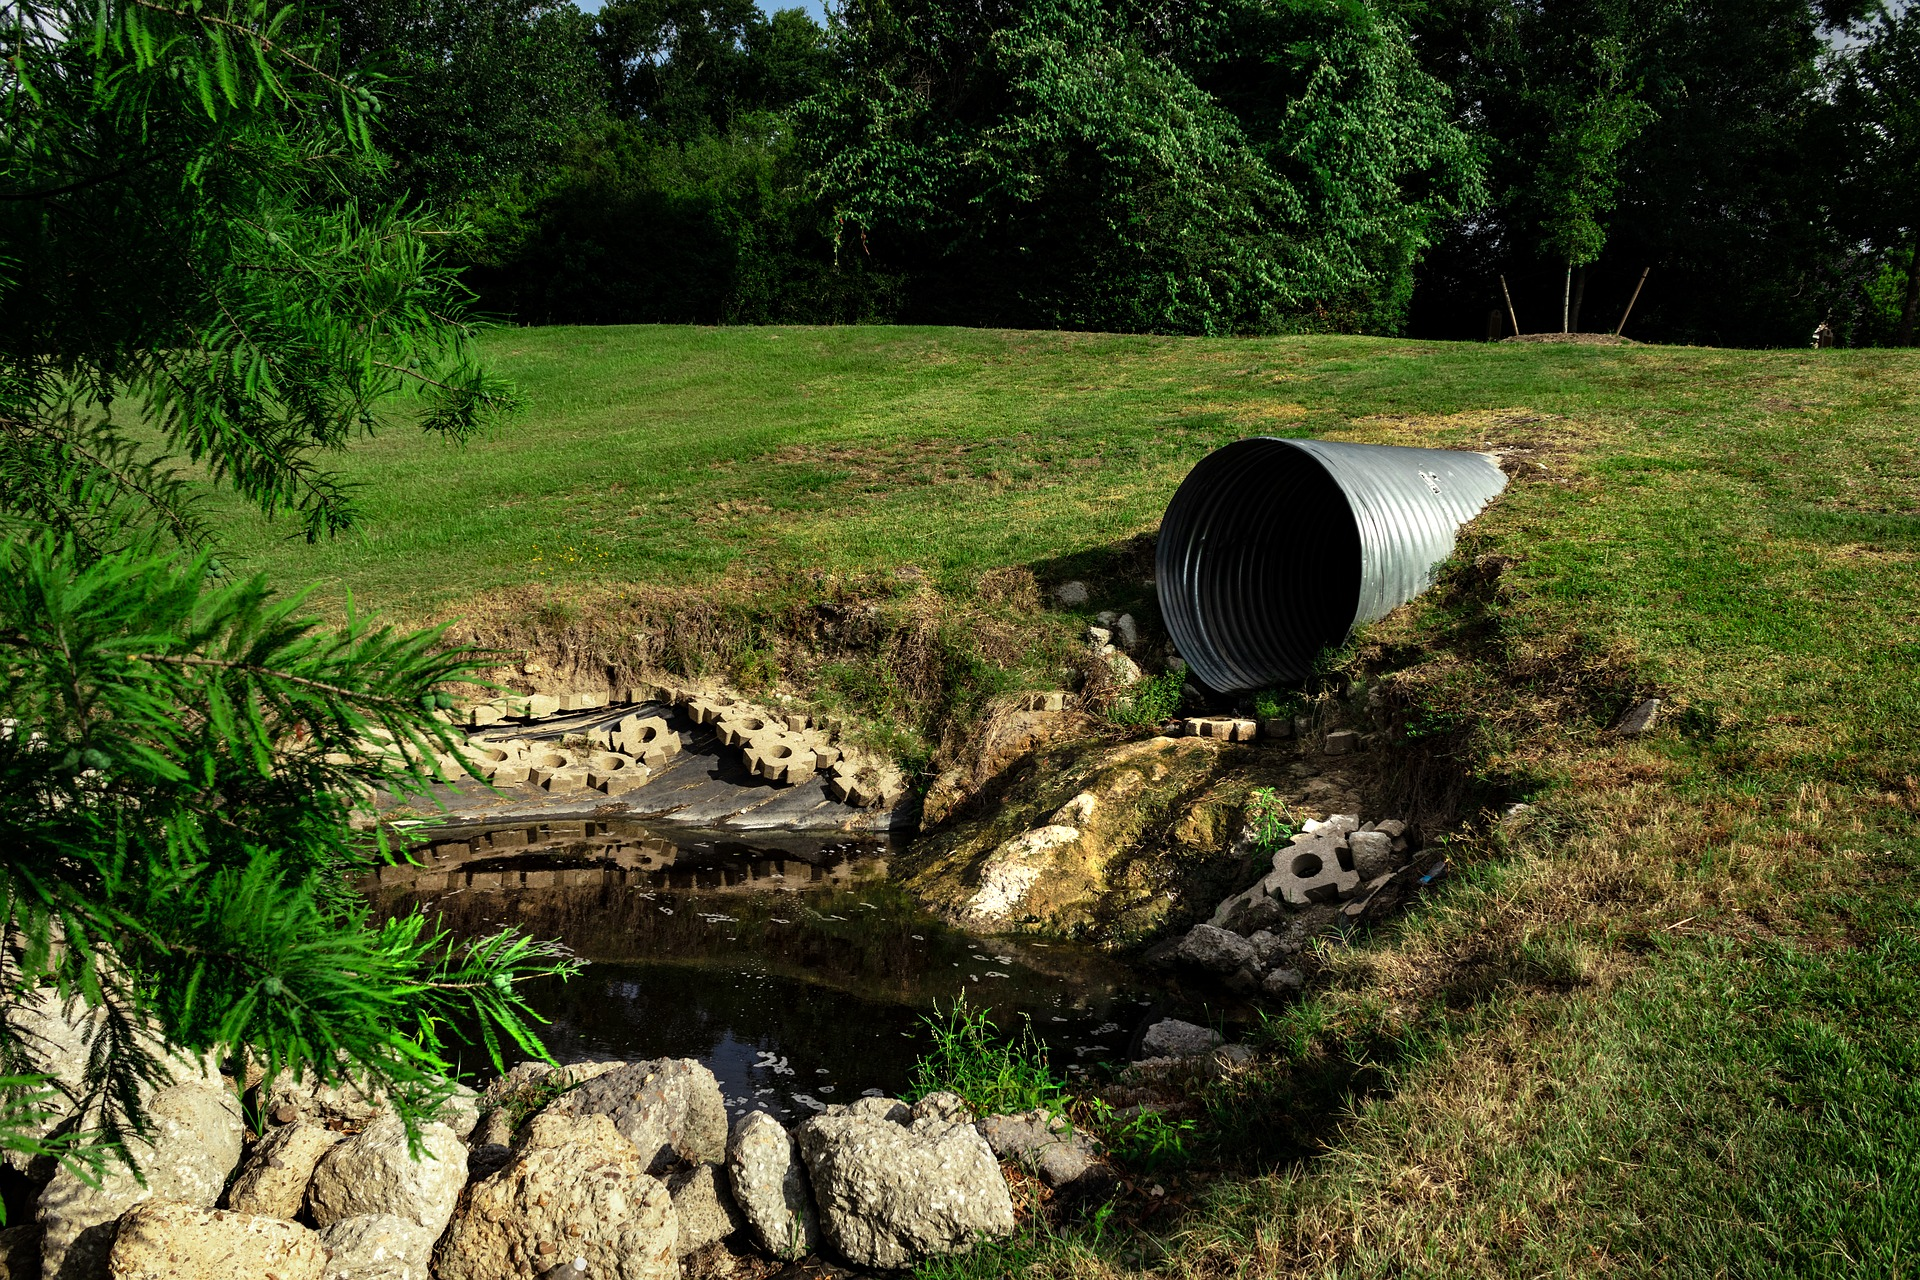 sewage-pipe-polluted-water-3465090_1920